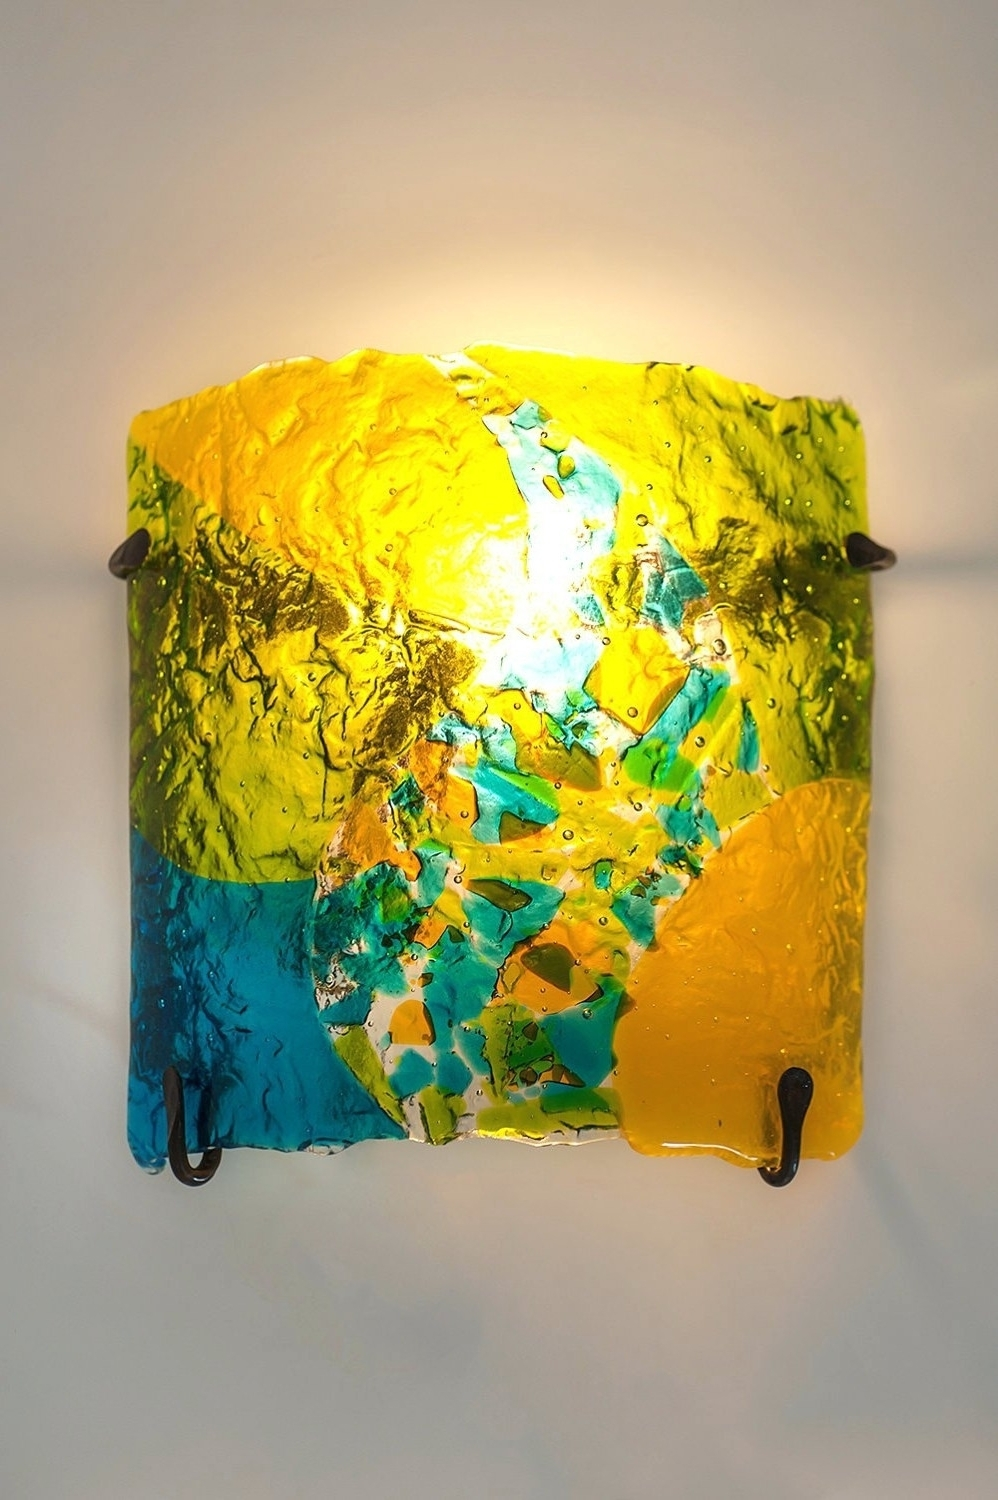 Most Recent Blown Glass Wall Art With Fancy Tempered Glass Wall Decor Ornament The Wall Art Decorations (Gallery 18 of 20)